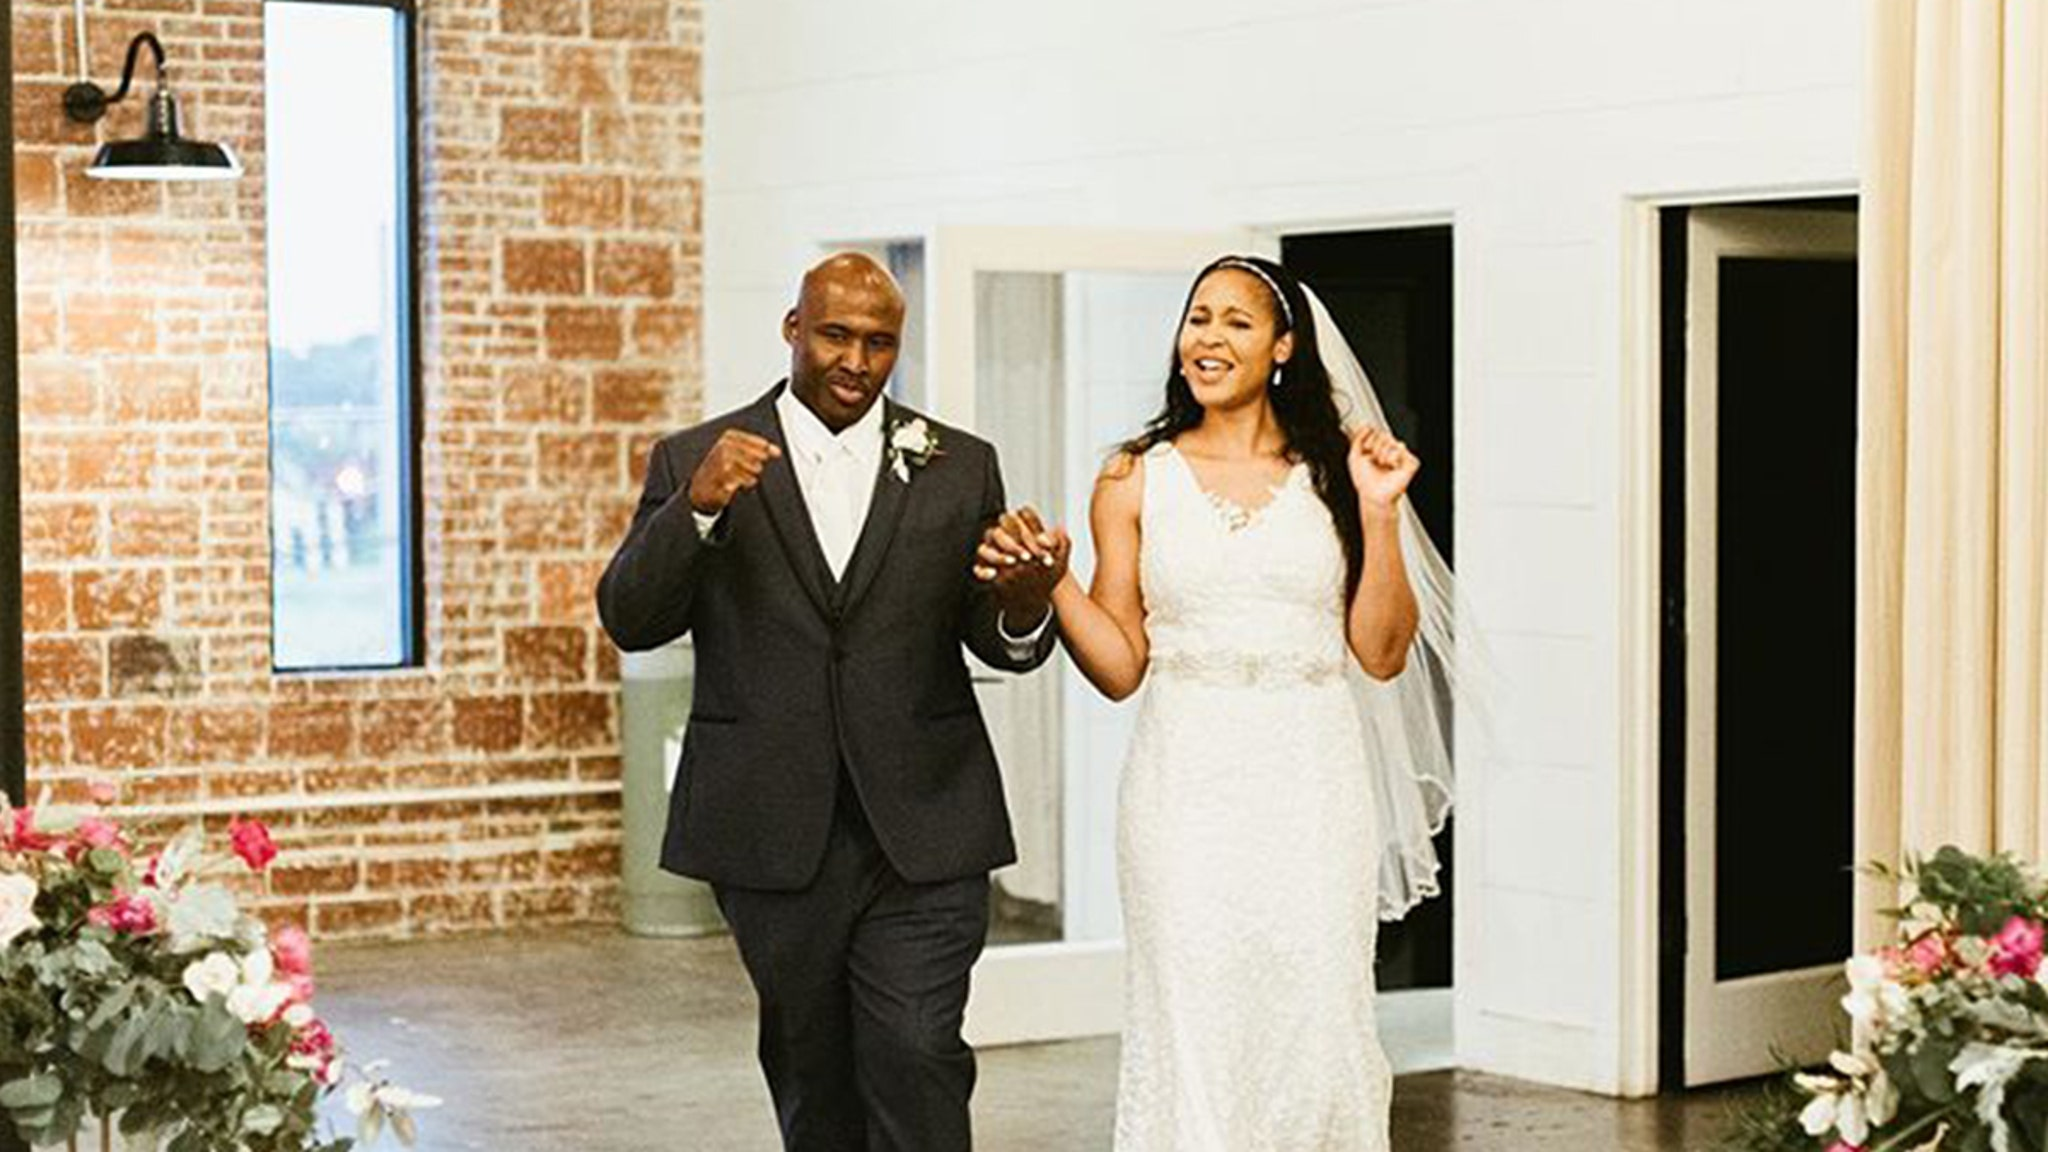 WNBA's Maya Moore Marries Jonathan Irons, Man She Helped Free from Prison